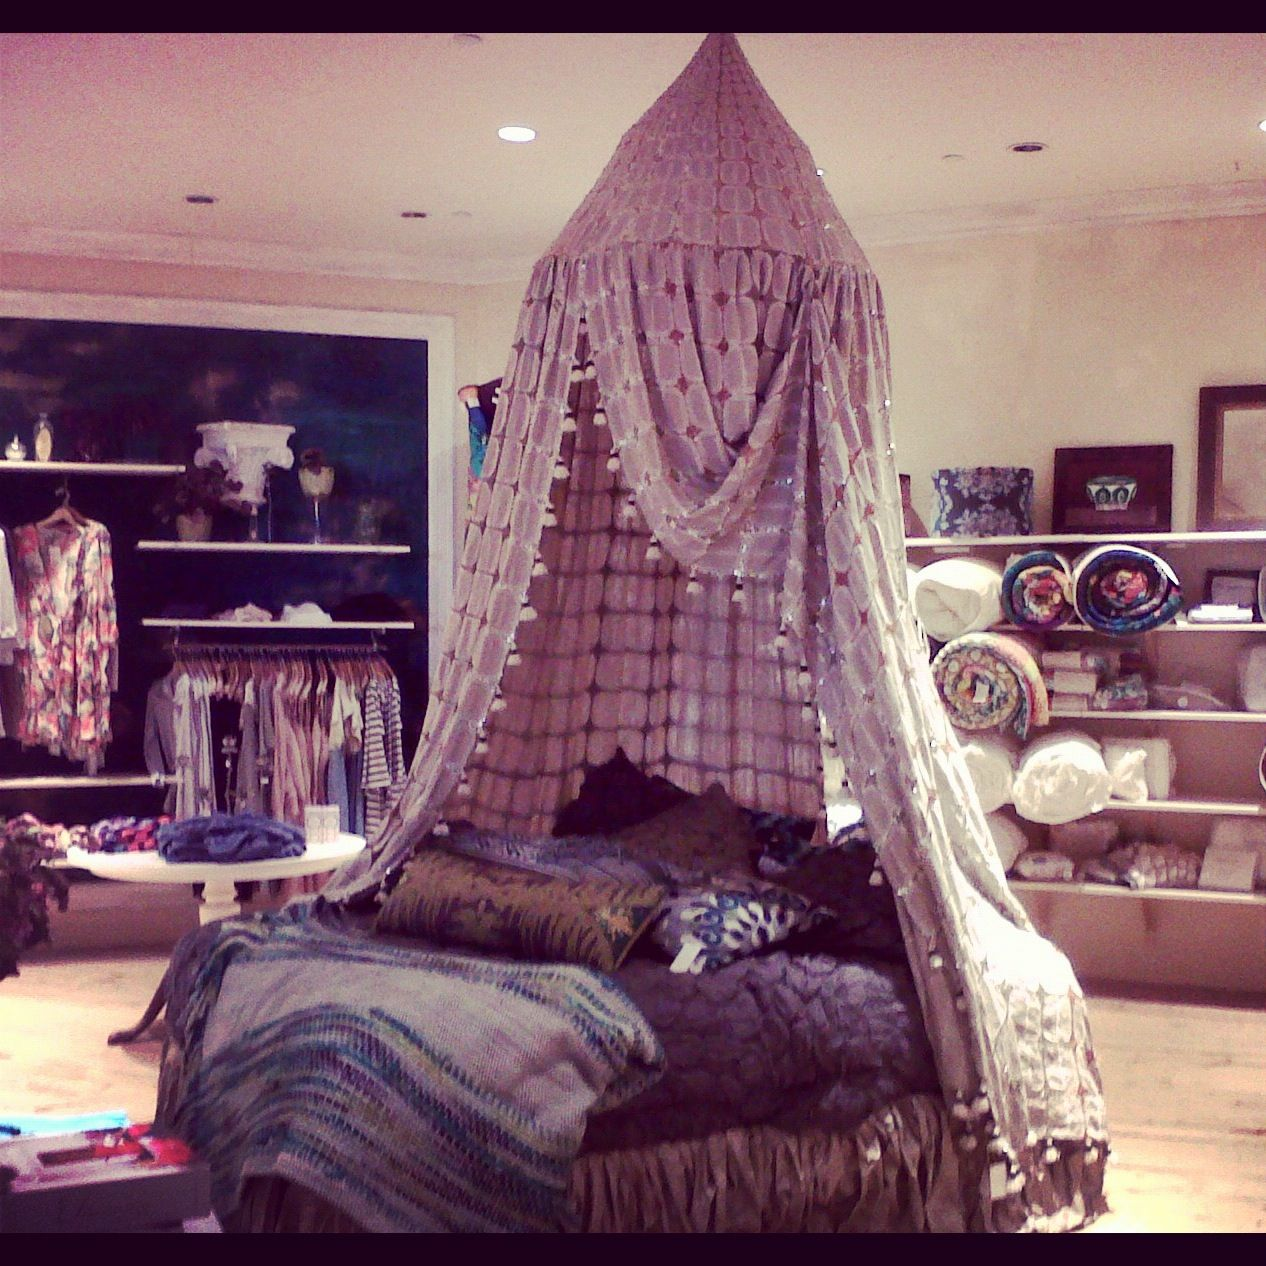 Canopy Bed Anthropologie With Images Bedroom Decor For Couples New York Bedroom Master